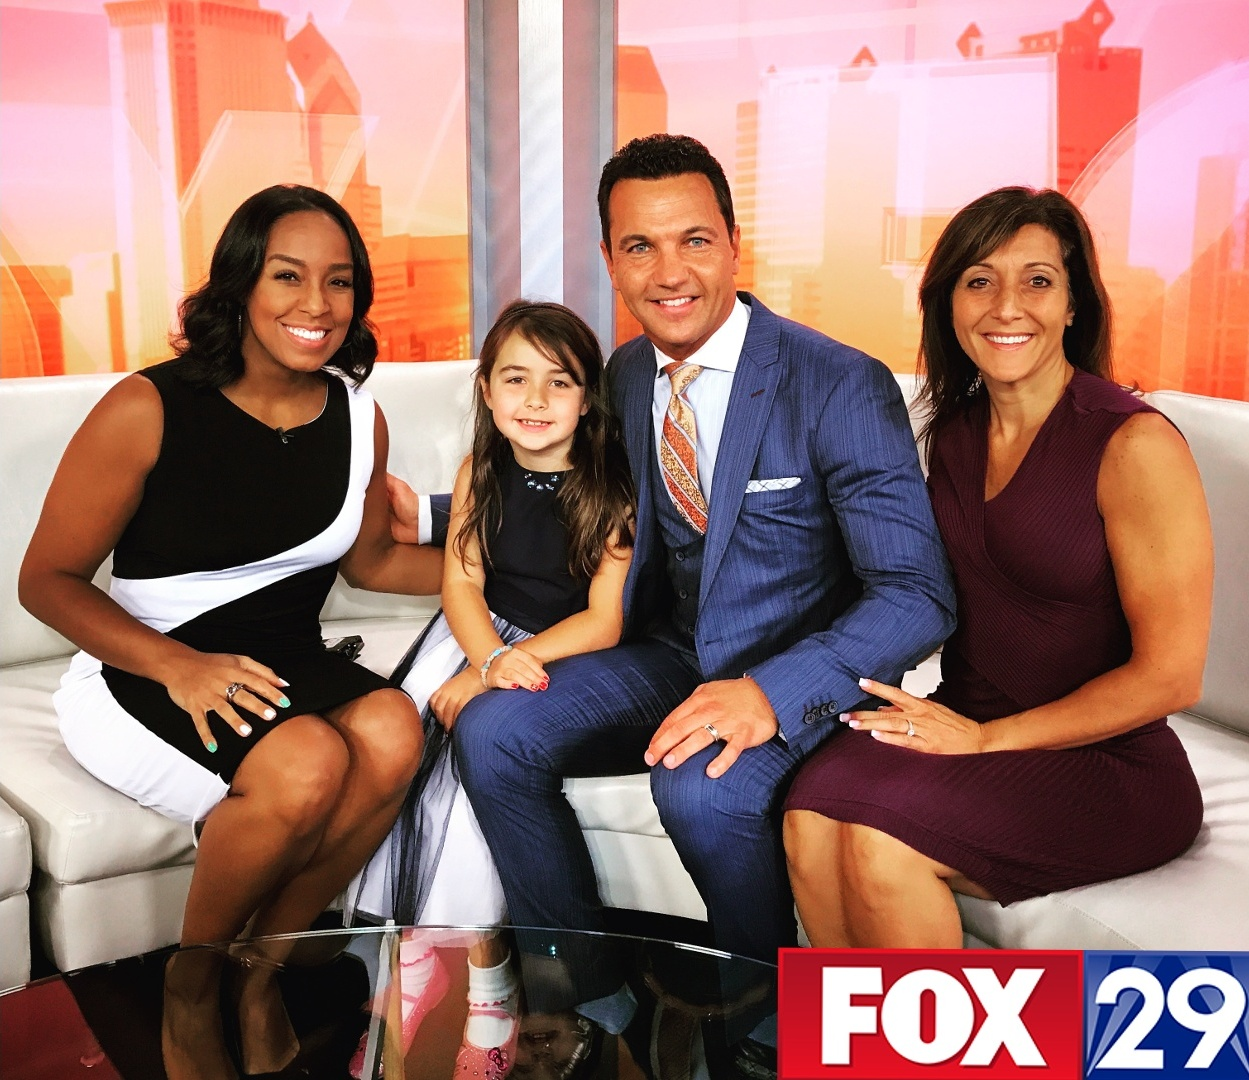 Marcello Pedalino, Lauren Johnson, Fox 29, Good Day Philadephia, Author of Celebrate Life